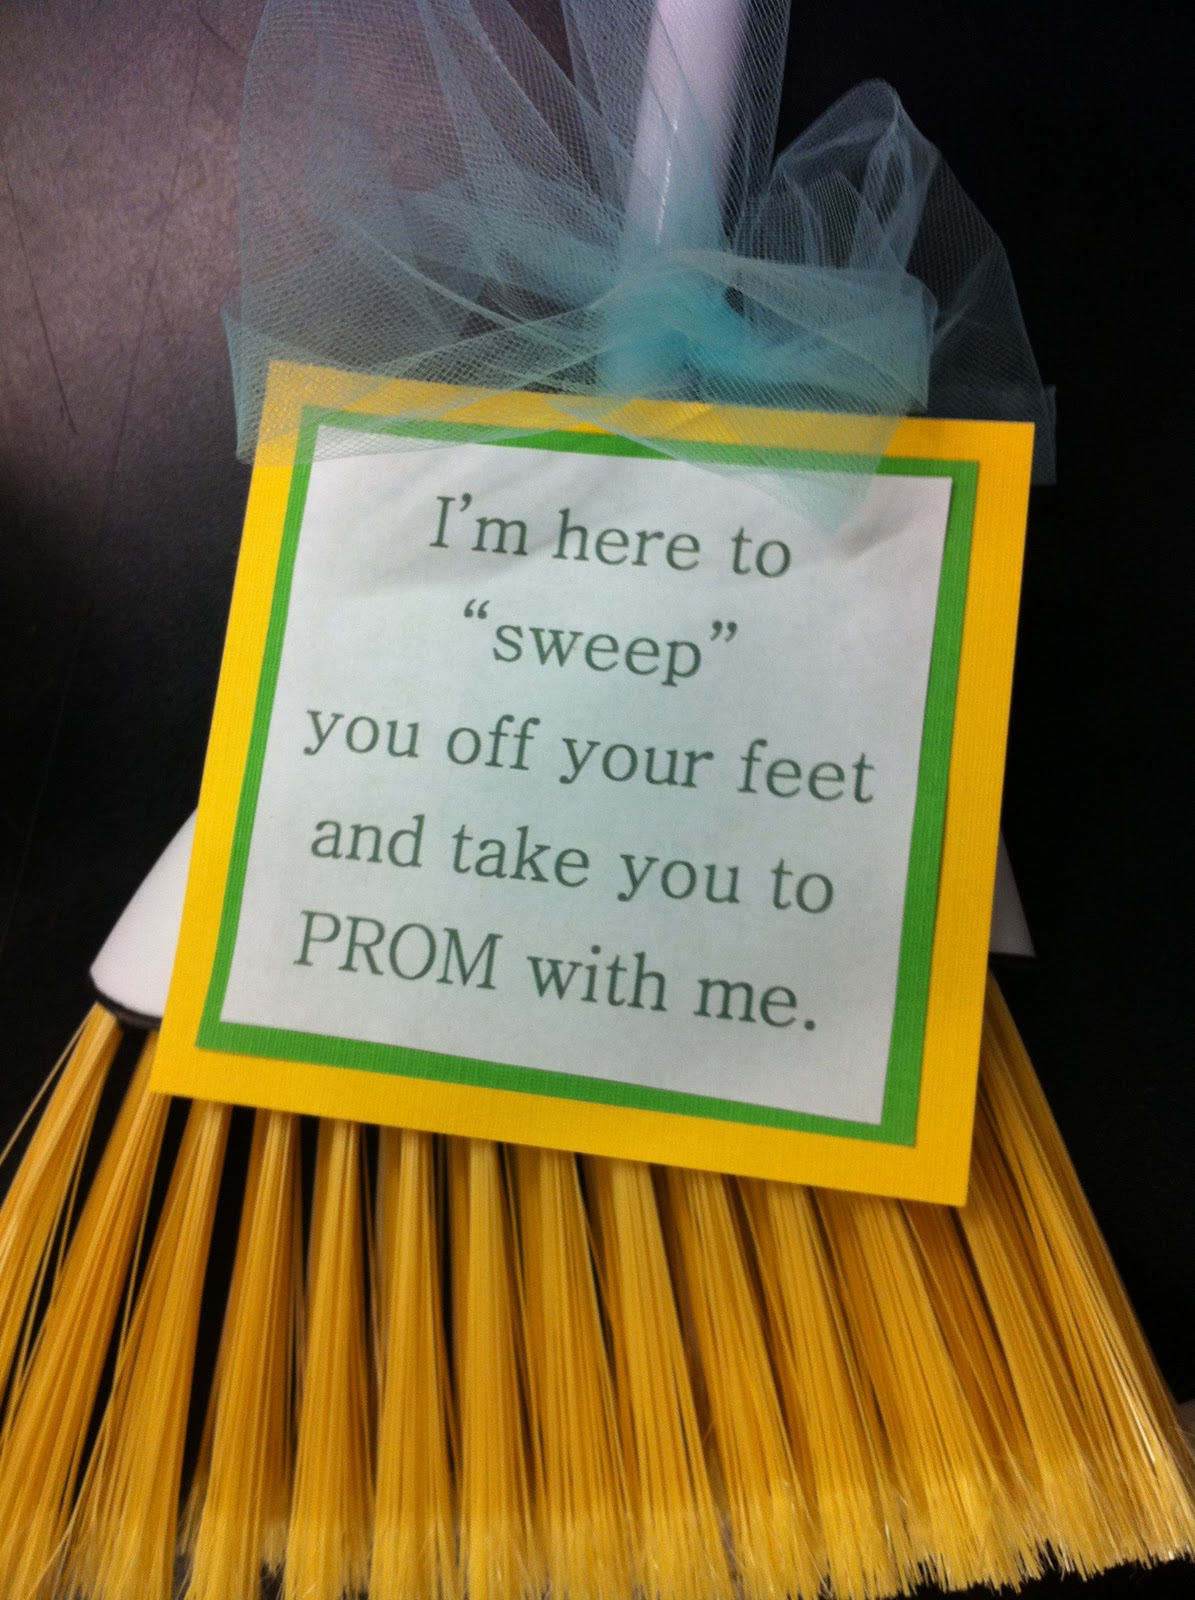 utah's crafty chick: prom asking ideas